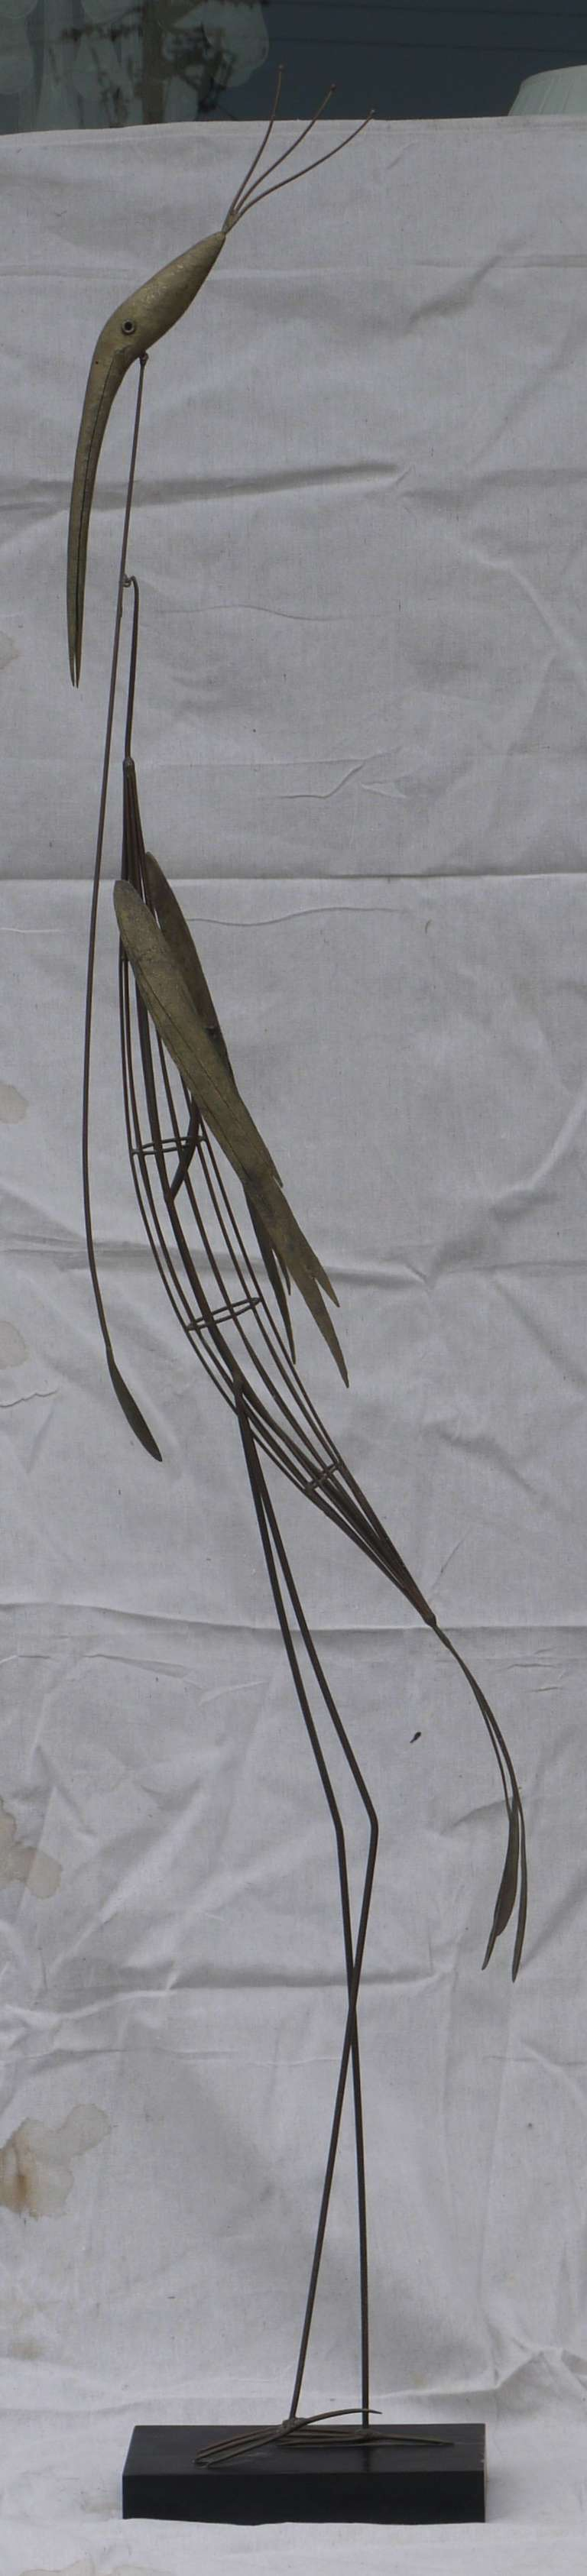 Wonderful kinetic melt coated brass sculpture of a crane with articulated head, wings, and neck which moves gently and was made by New York artist Ruddolph Turnbull, circa 1950.